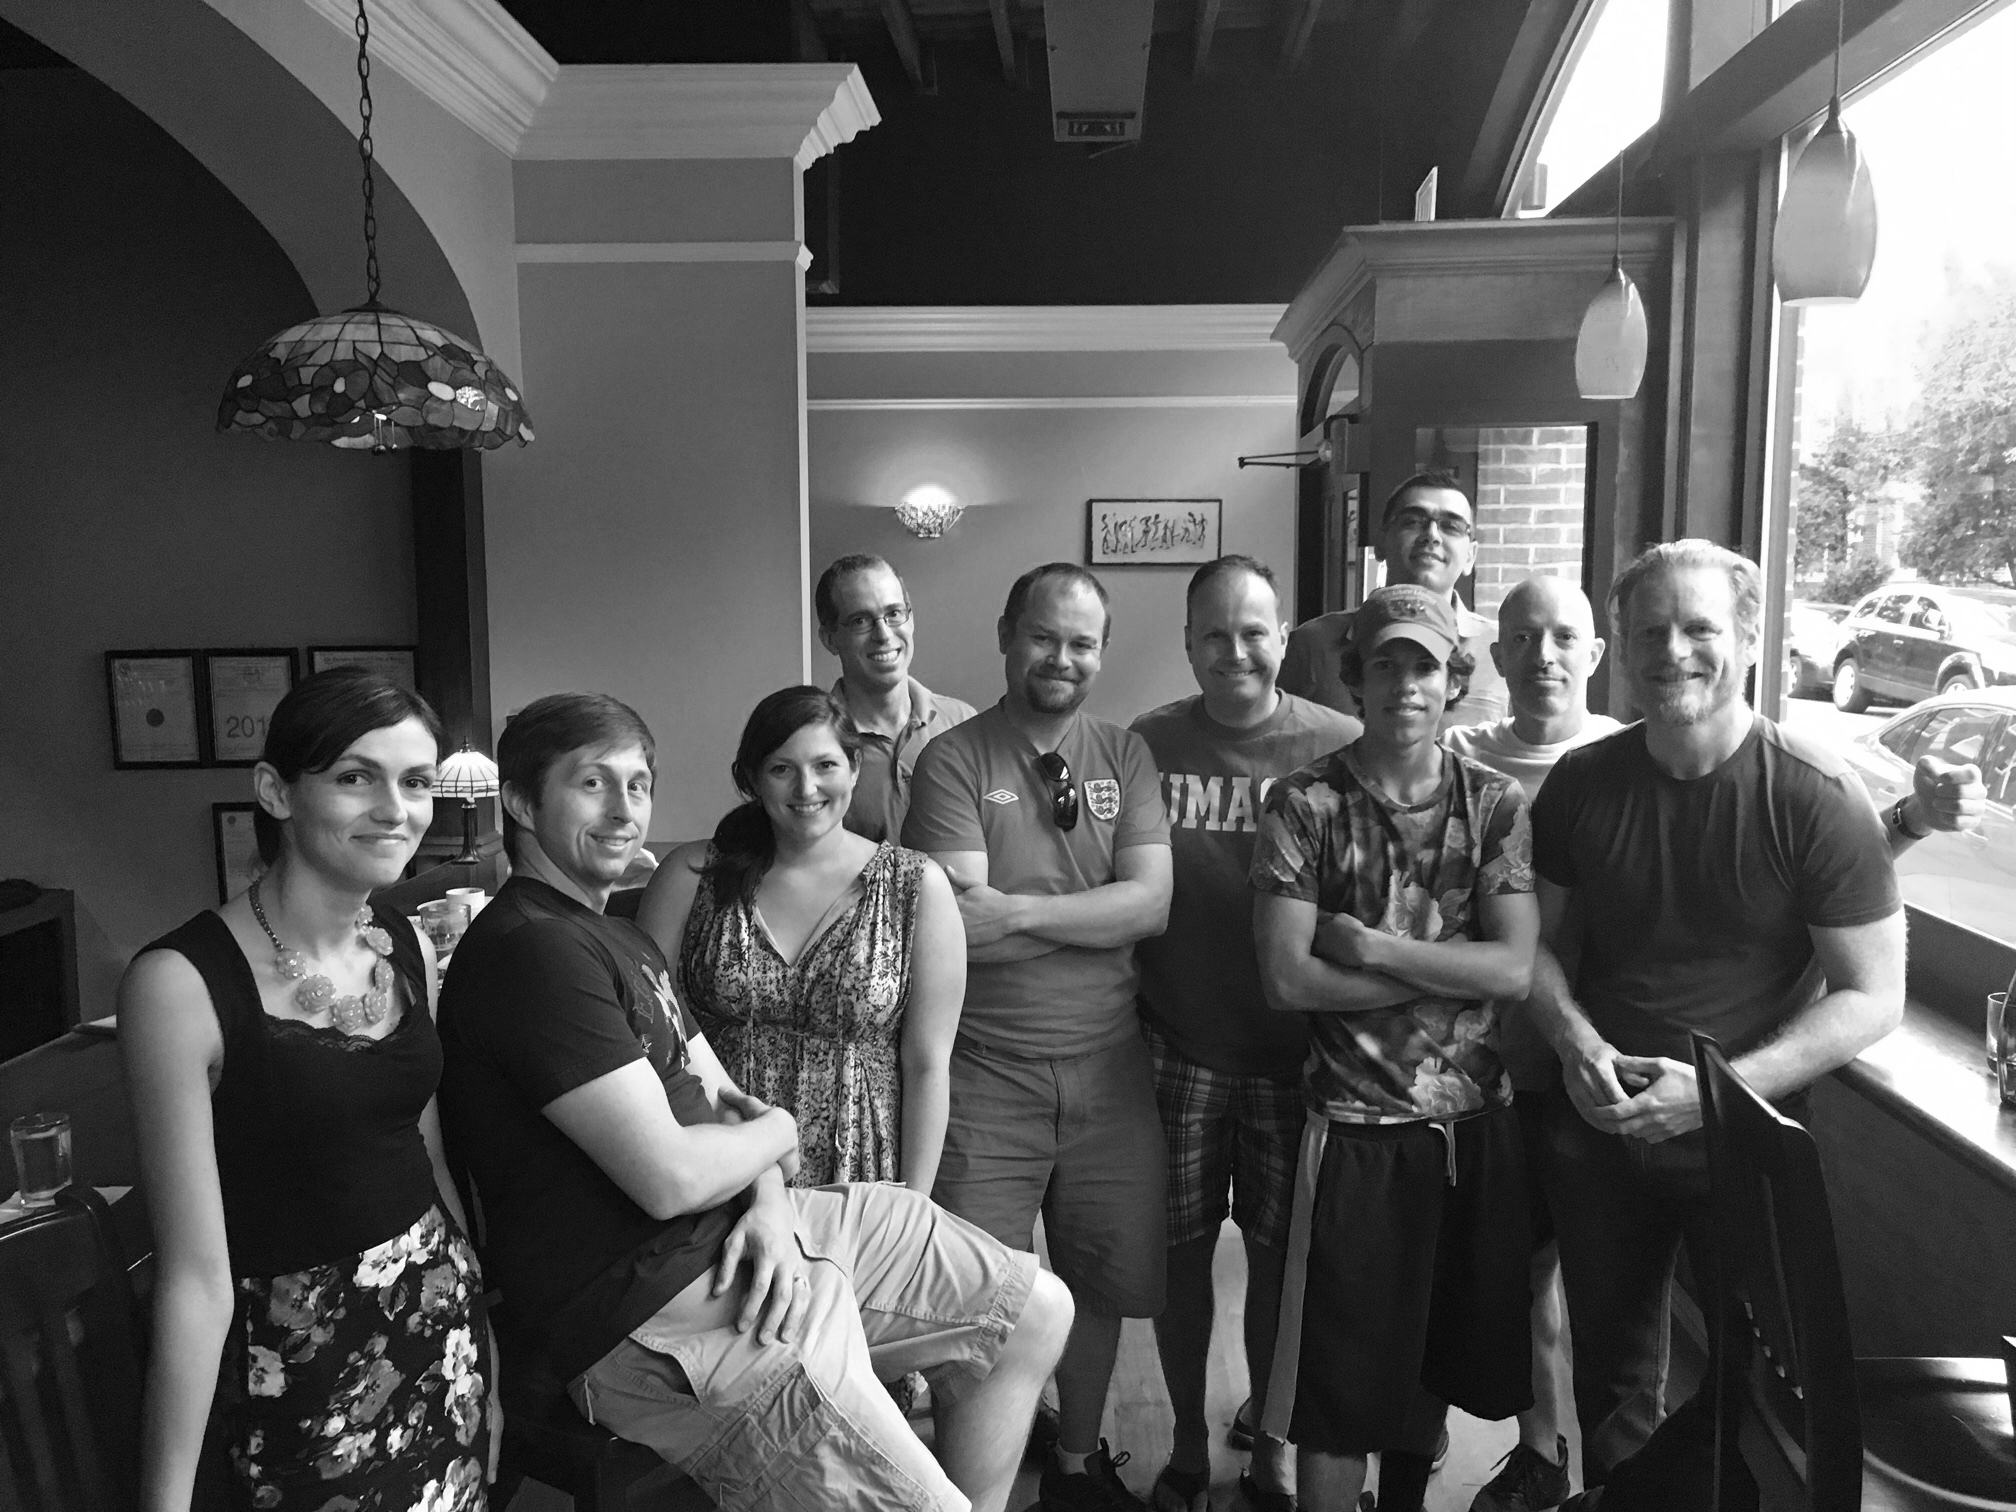 A Boston meet-up in which Harris bought nice people beer